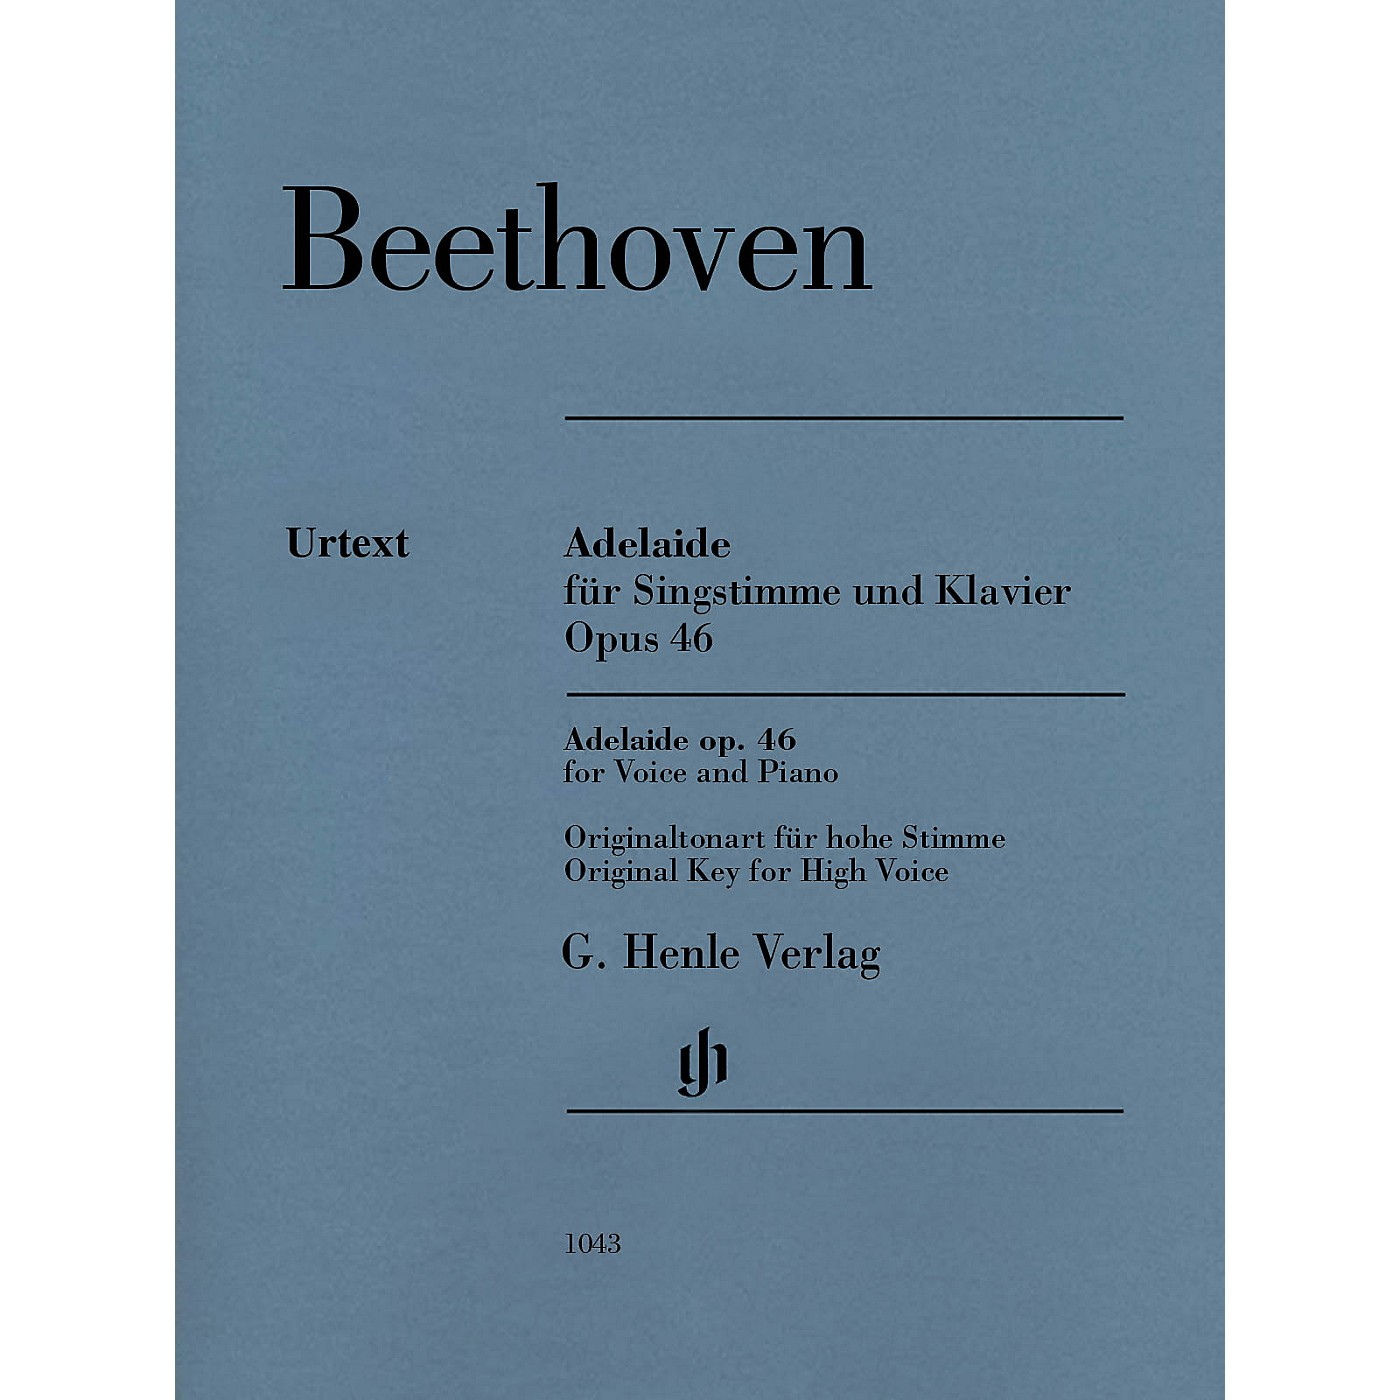 G. Henle Verlag Adelaide, Op. 46 Henle Music Folios Softcover  by Ludwig van Beethoven Edited by Helga Luhning thumbnail